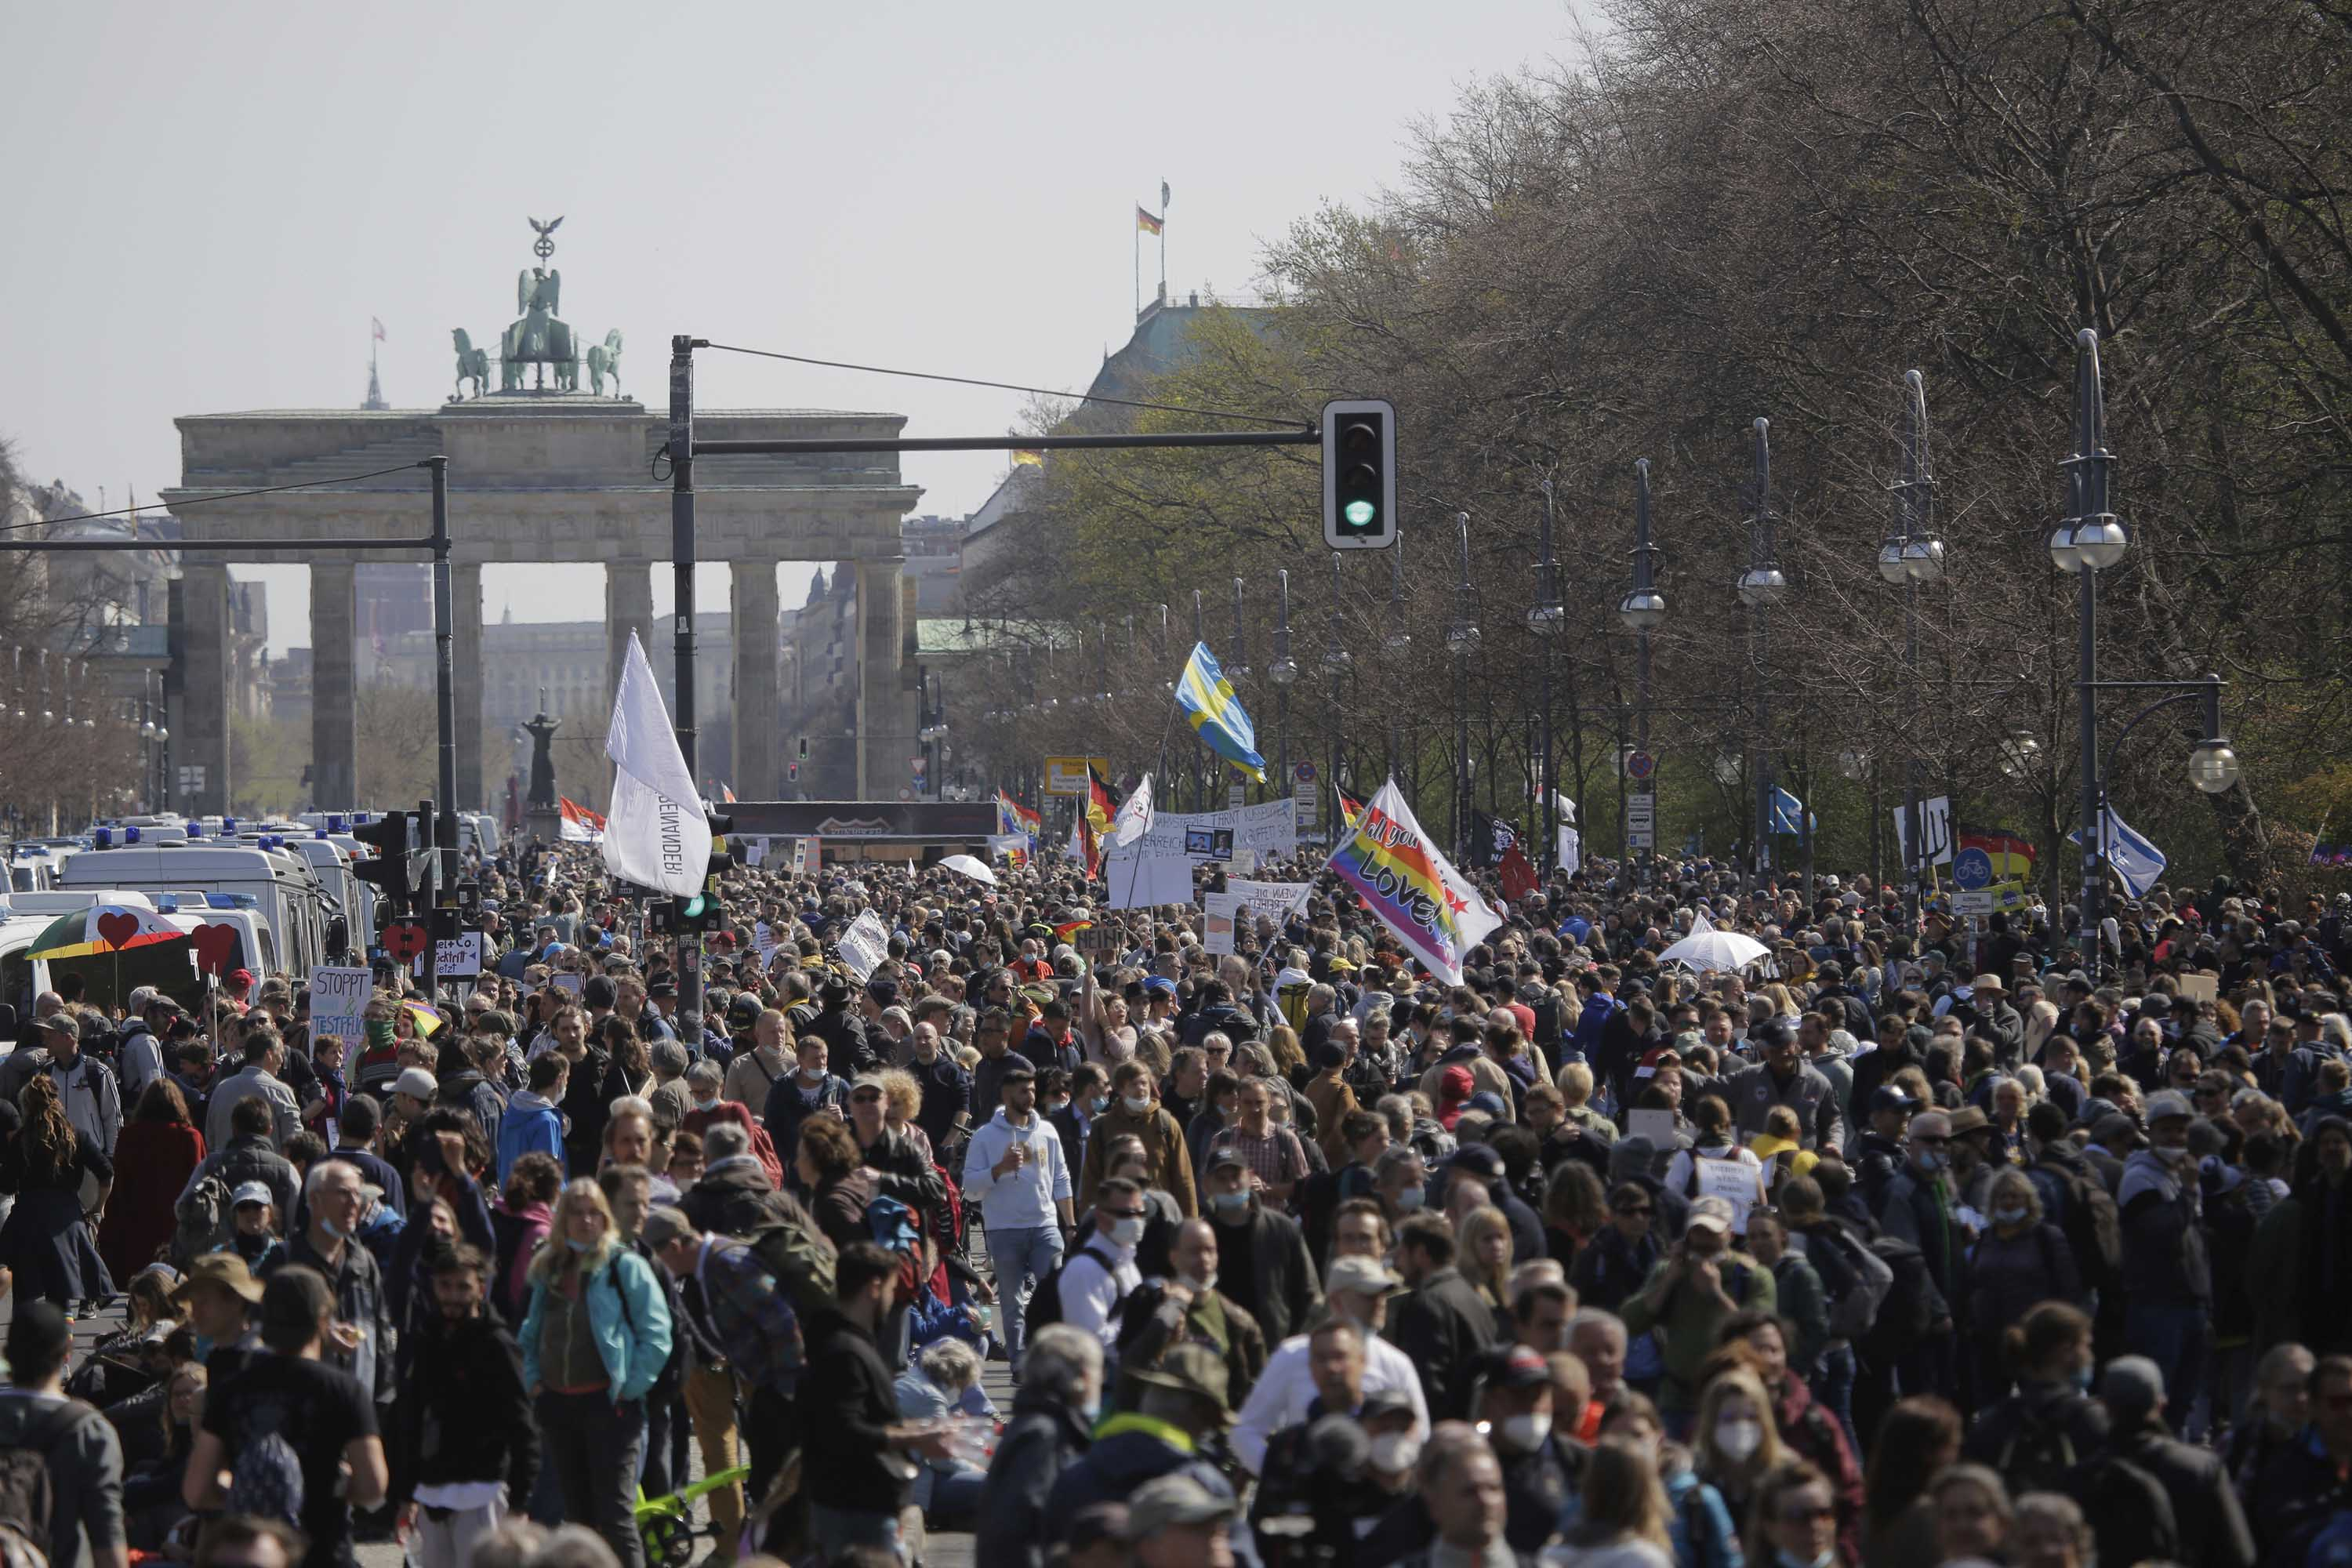 Demonstrators attend a protest rally against the government's measures to contain the coronavirus pandemic, near the Brandenburg Gate in Berlin, Germany, on Wednesday, April 21.